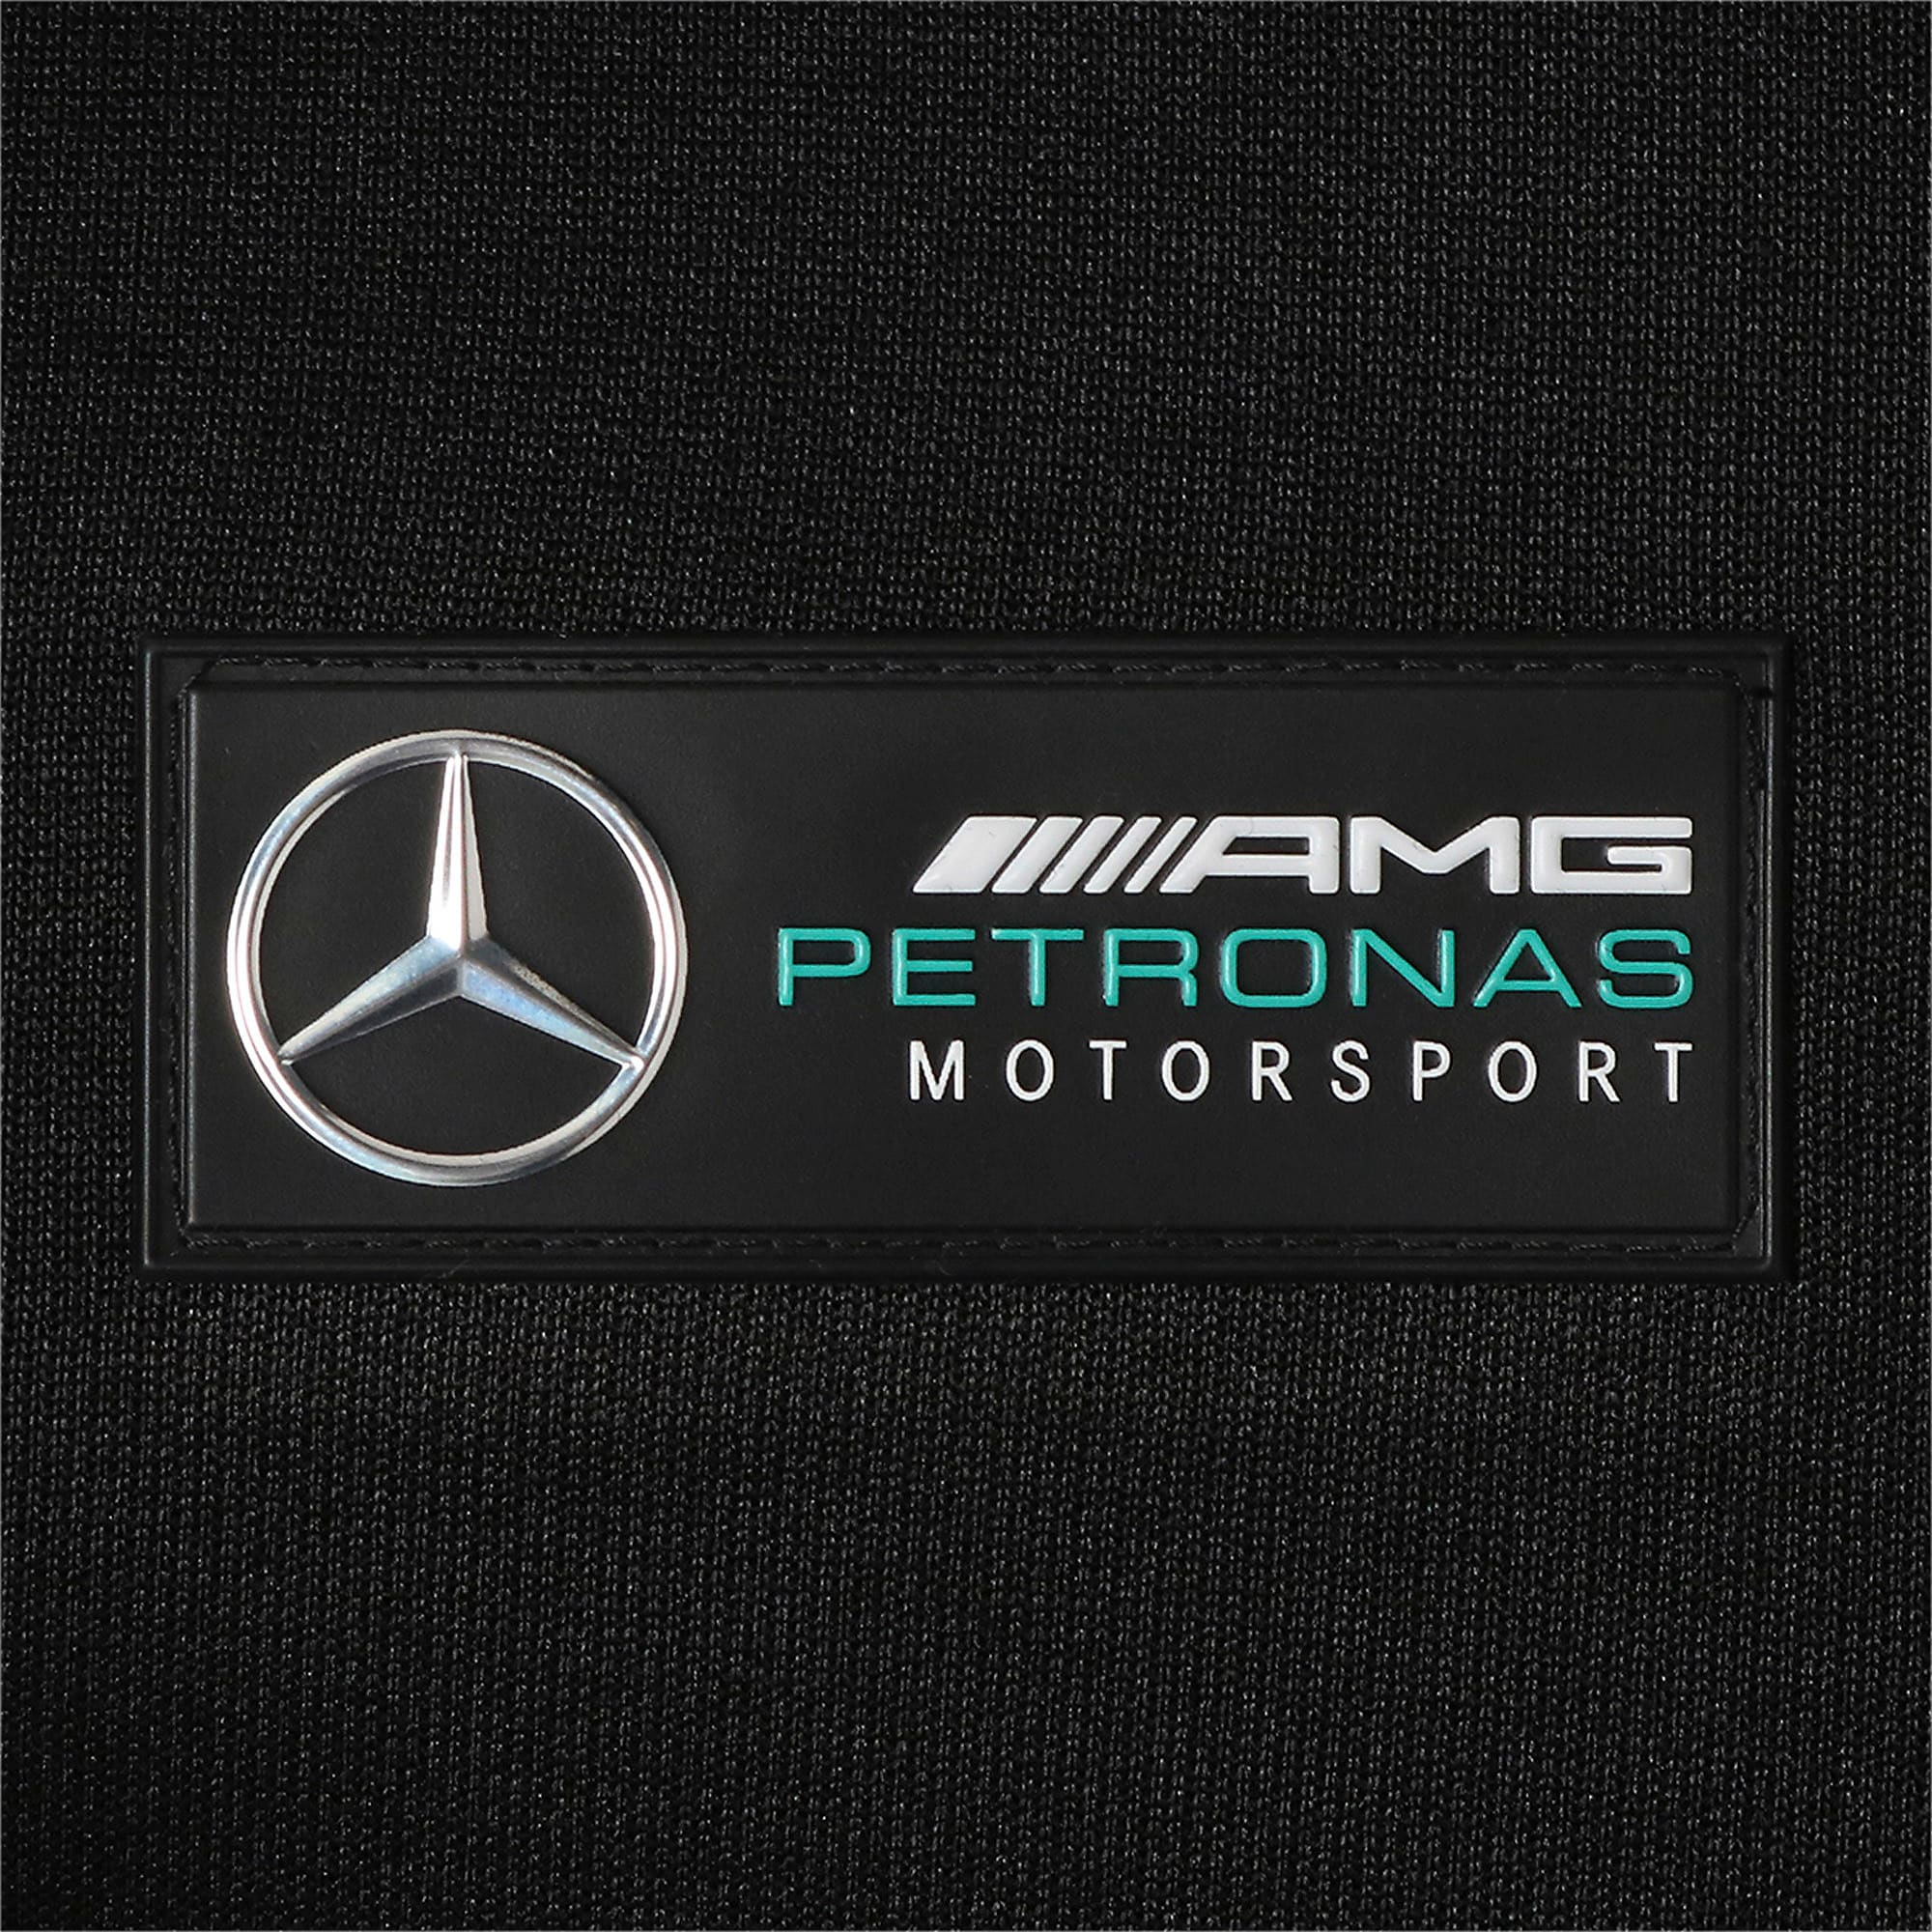 Thumbnail 8 of MERCEDES AMG PETRONAS MOTORSPORT T7 トラック ジャケット, Puma Black, medium-JPN